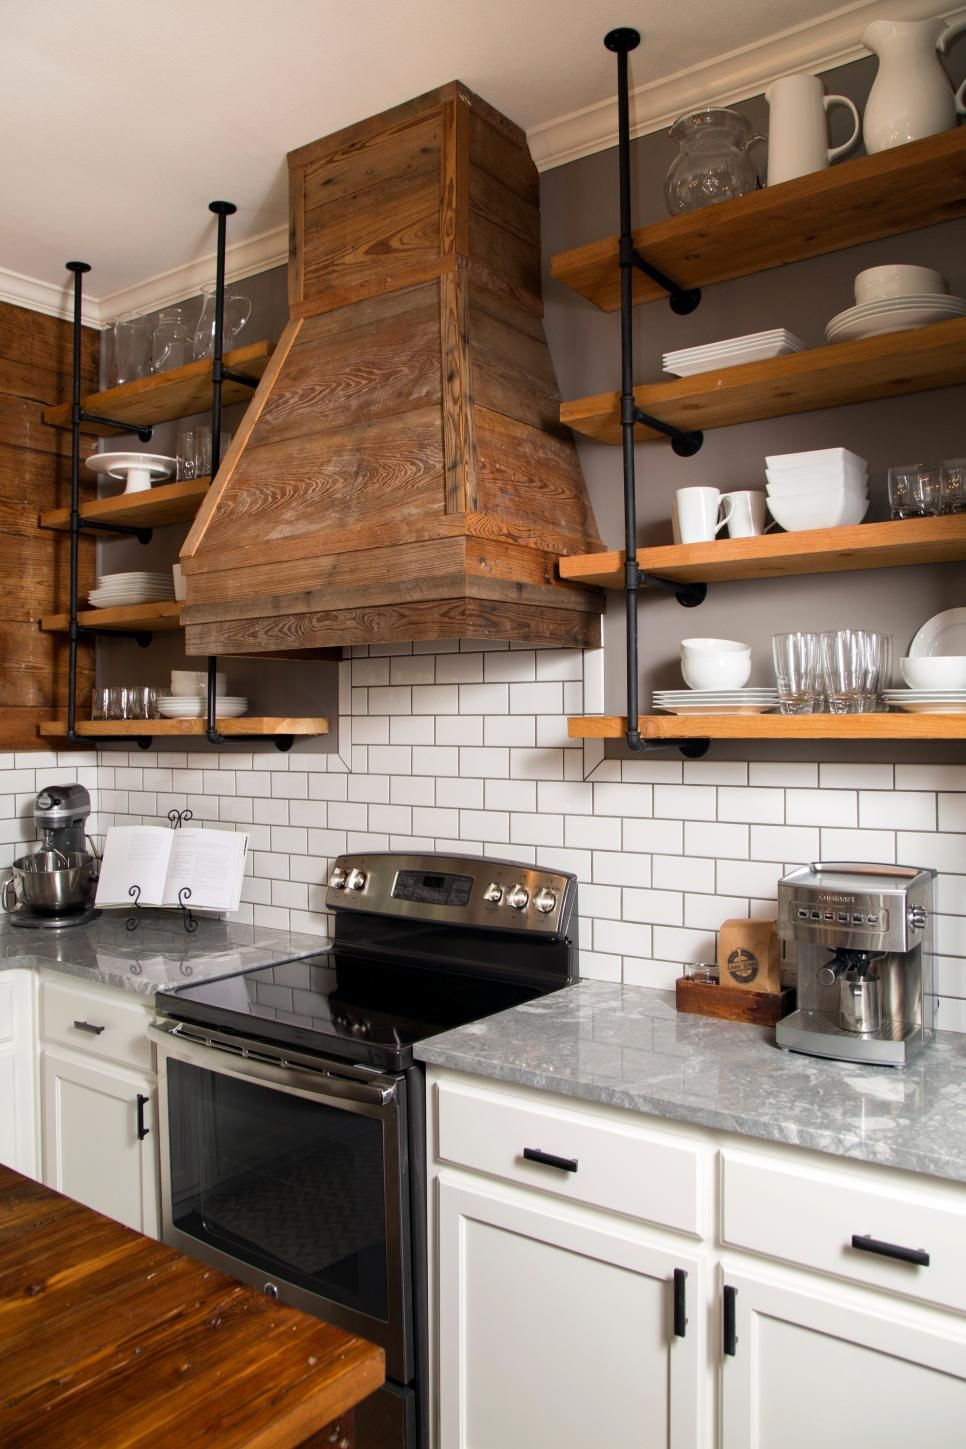 Fixer Upper A Craftsman Remodel For Coffeehouse Owners Rustic Kitchen Cabinets Rustic Industrial Kitchen Farmhouse Kitchen Backsplash